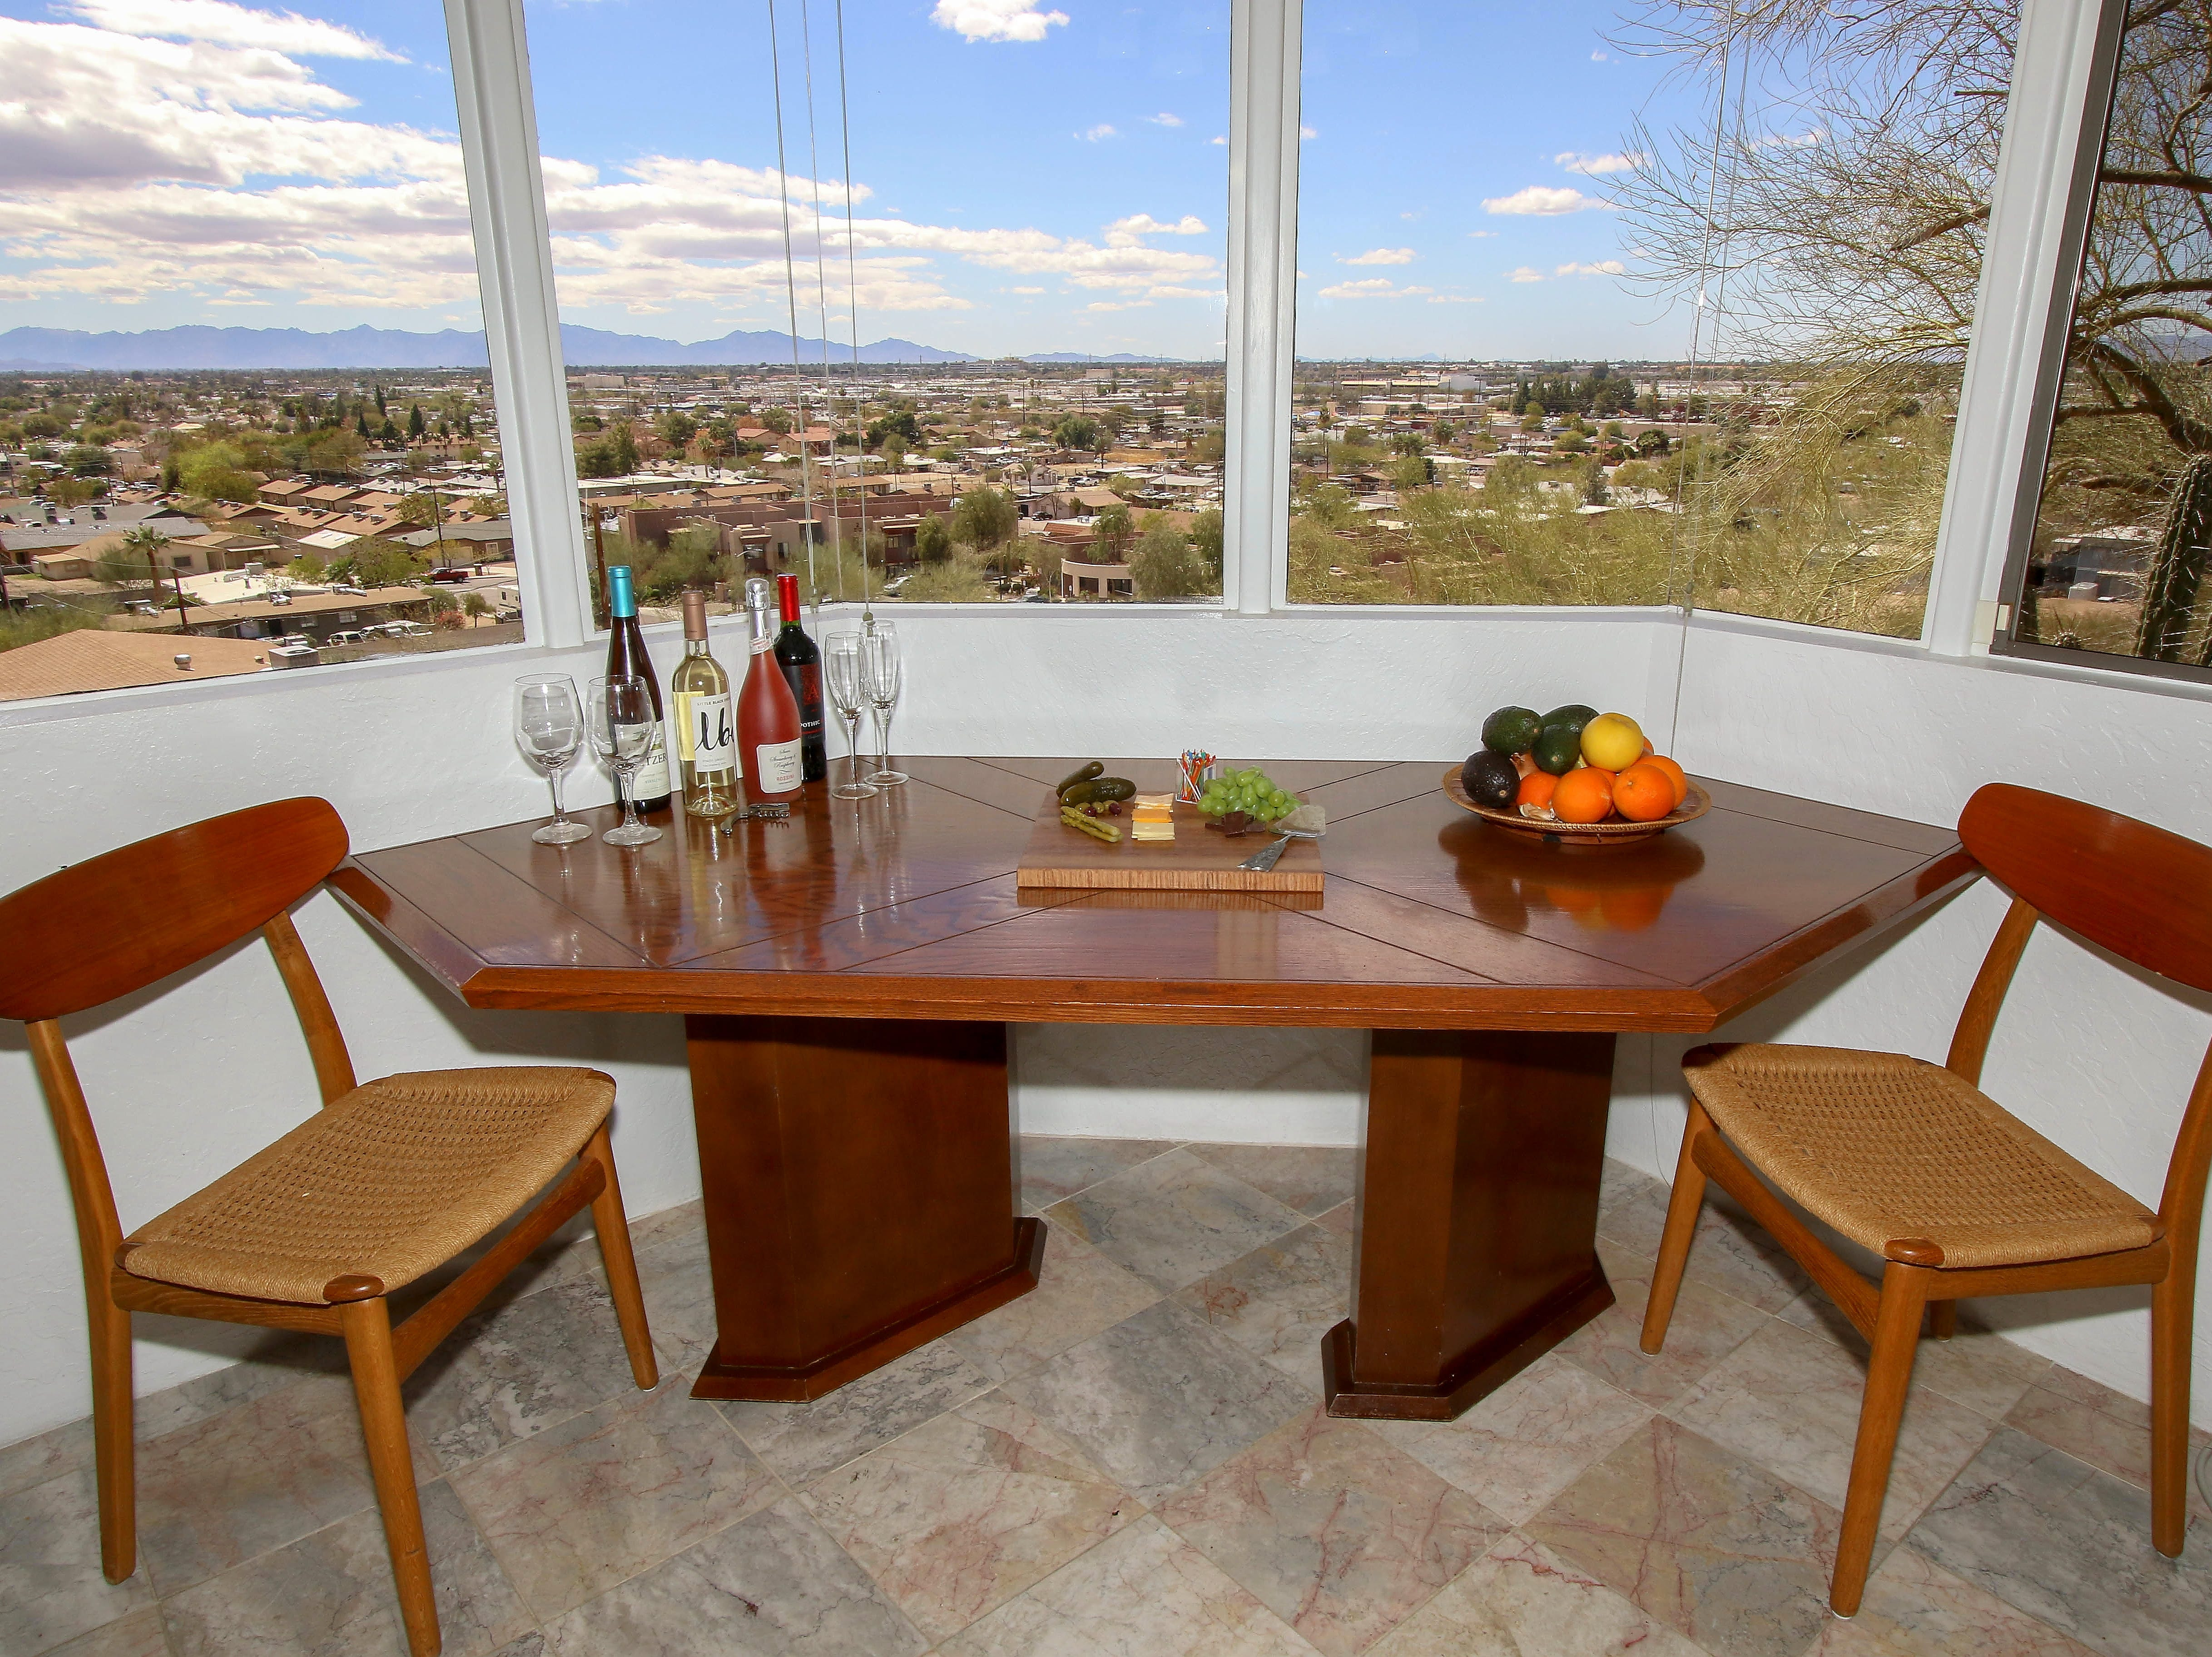 The dining room table was custom built for the space, and can be pushed into the wall for buffet-style serving.